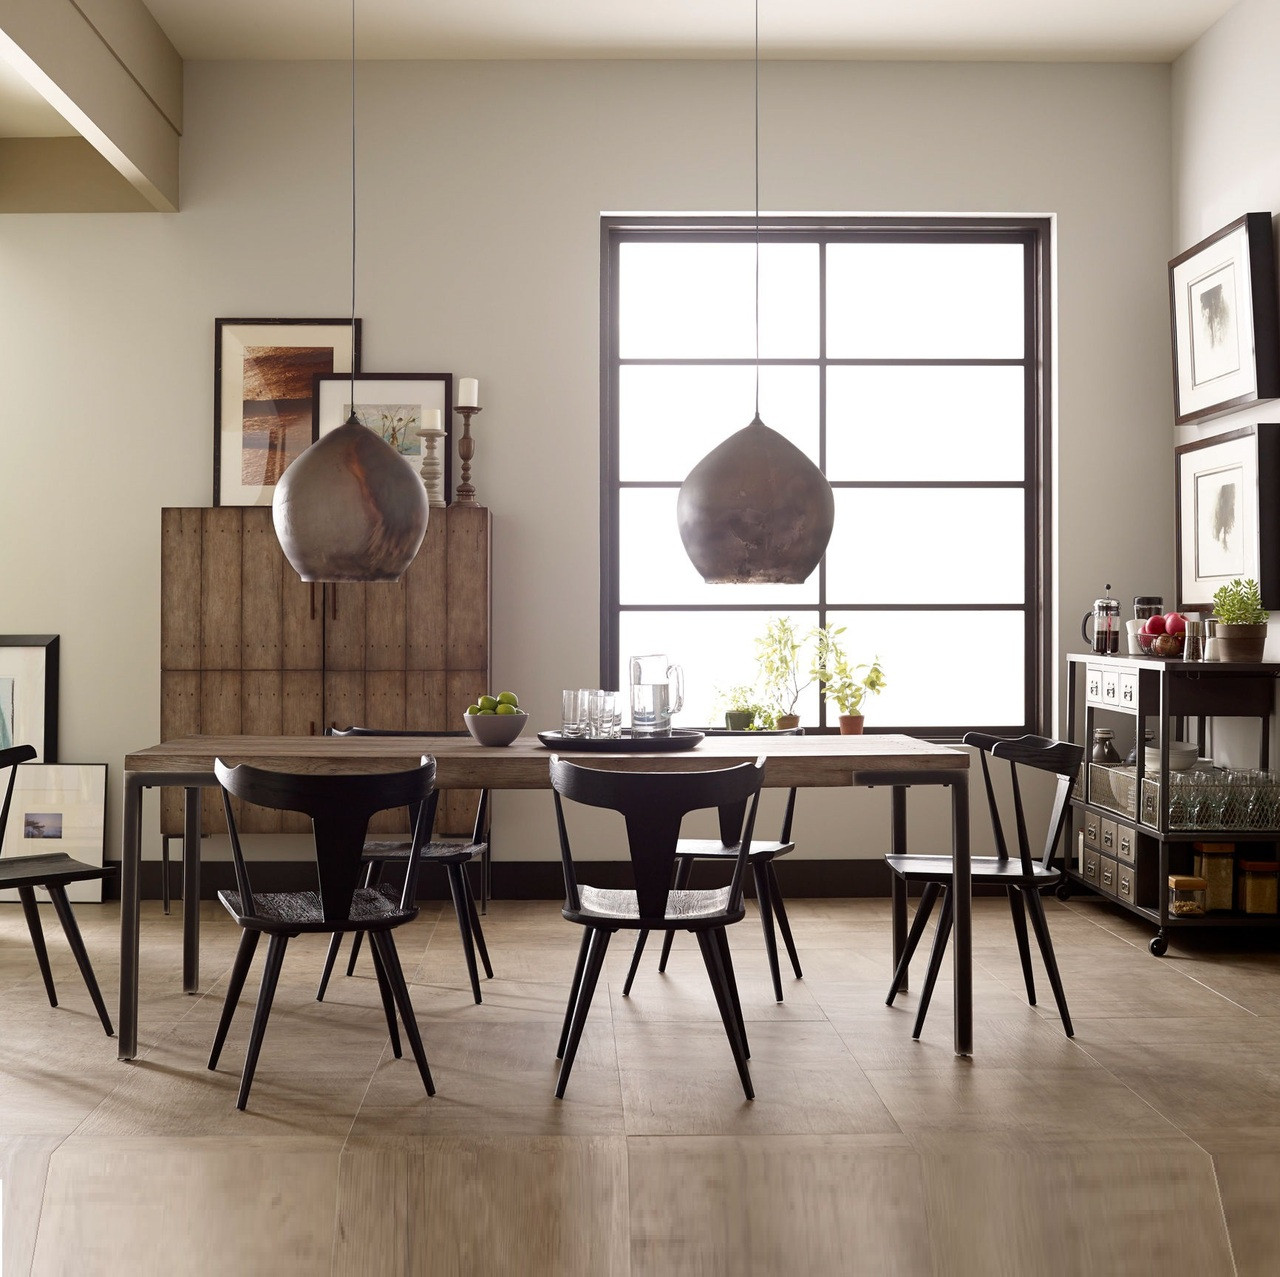 Lorie Driftwood Oak + Iron Dining Room Table - Lorie Driftwood Oak + Iron Dining Room Table Zin Home